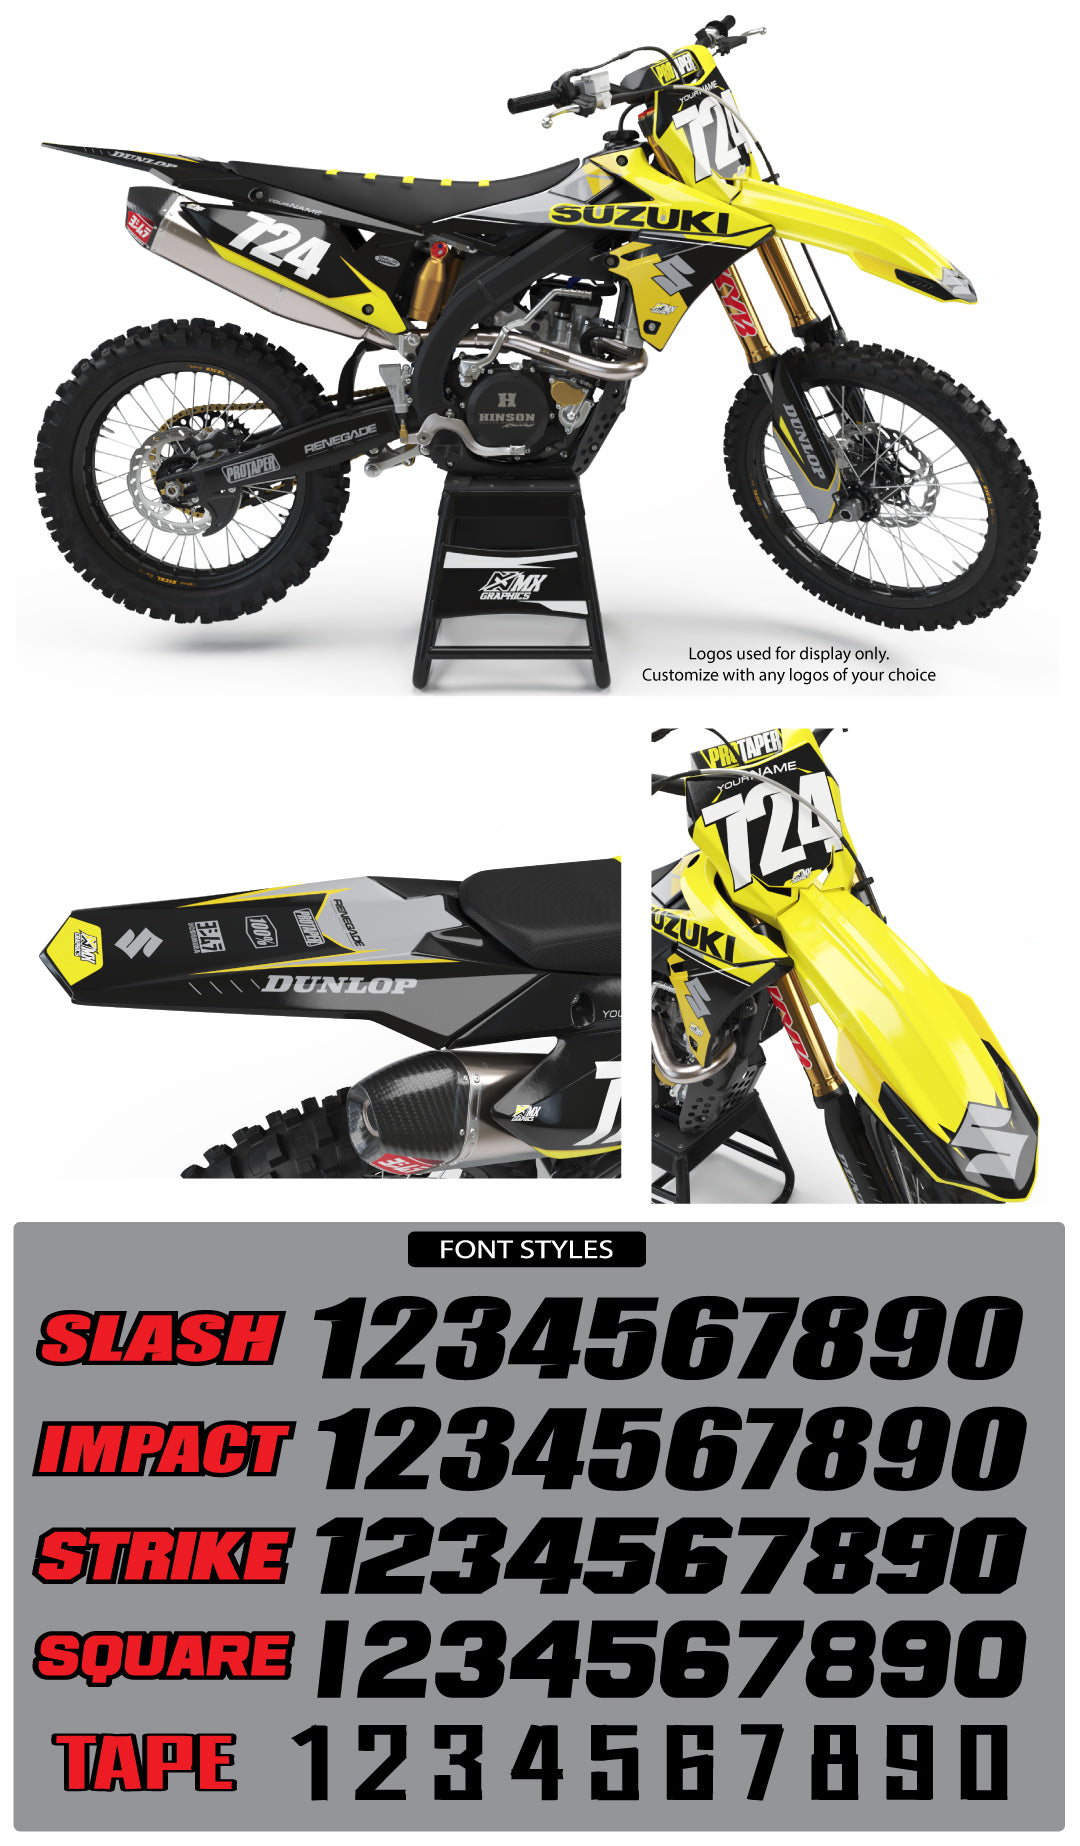 Suzuki MX 21 Graphic Kit